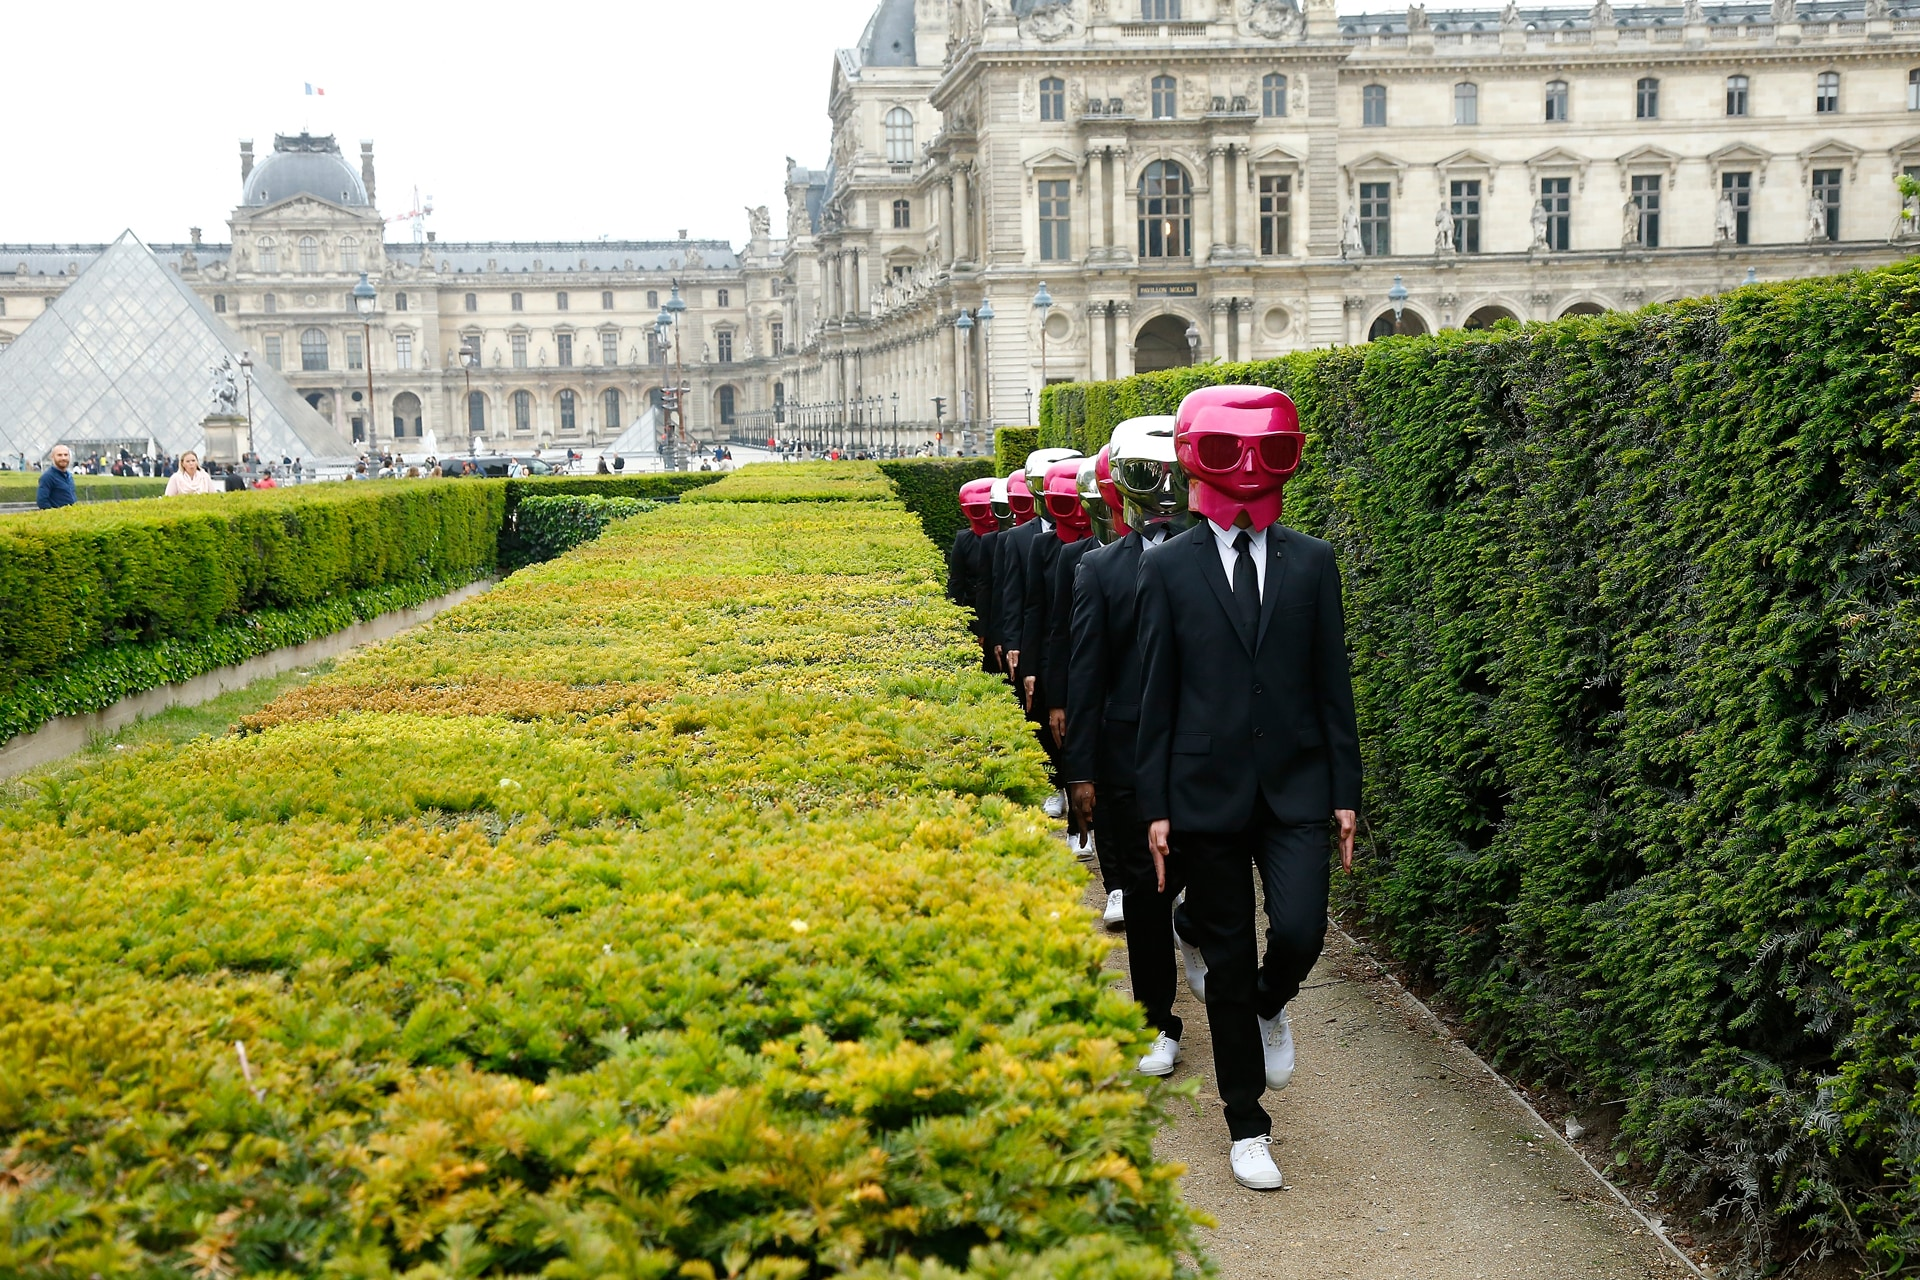 Karl Lagerfeld and ModelCo bring Paris to a standstill in the name of beauty